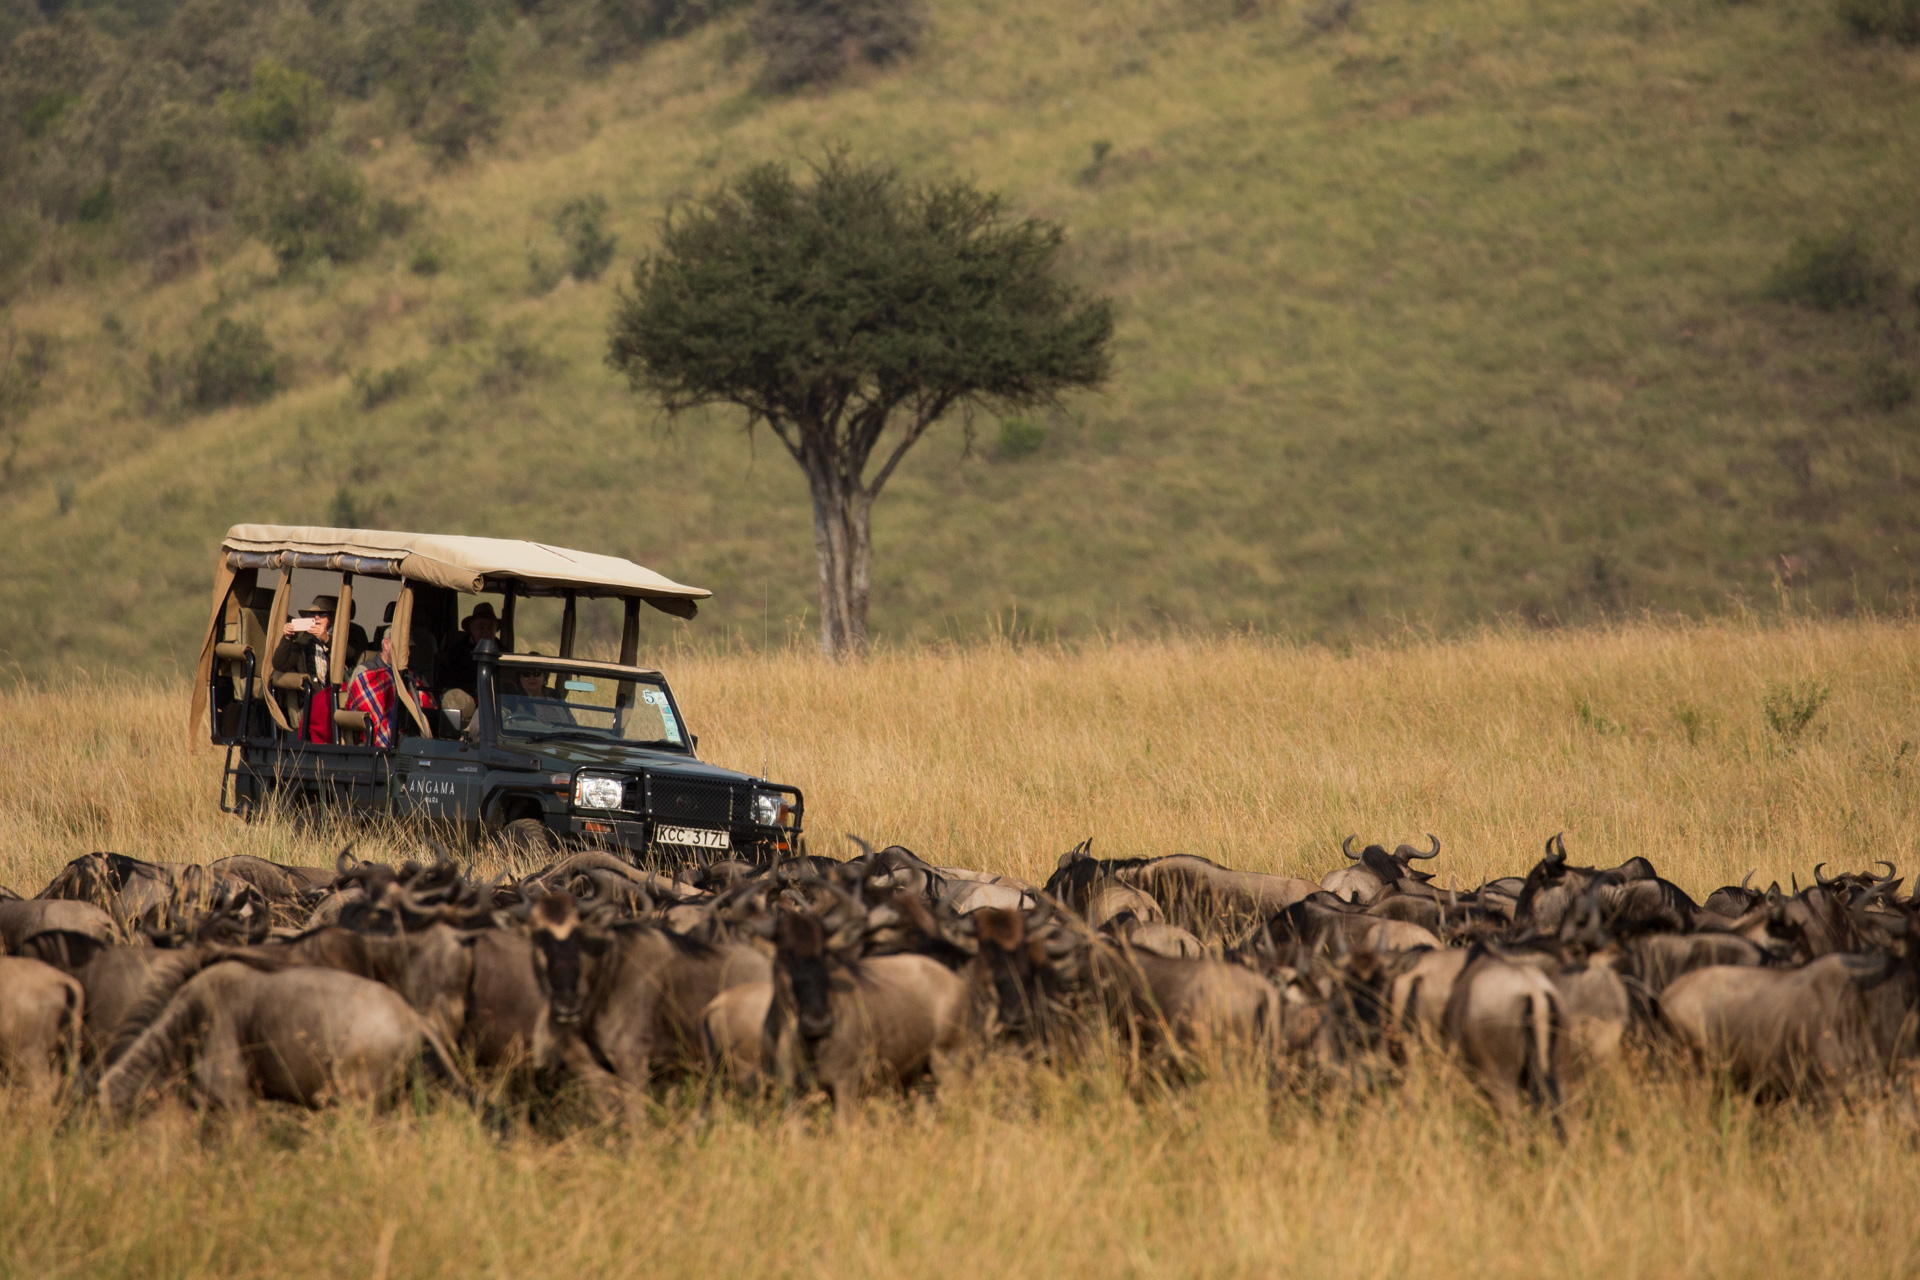 game vehicle and wildebeest